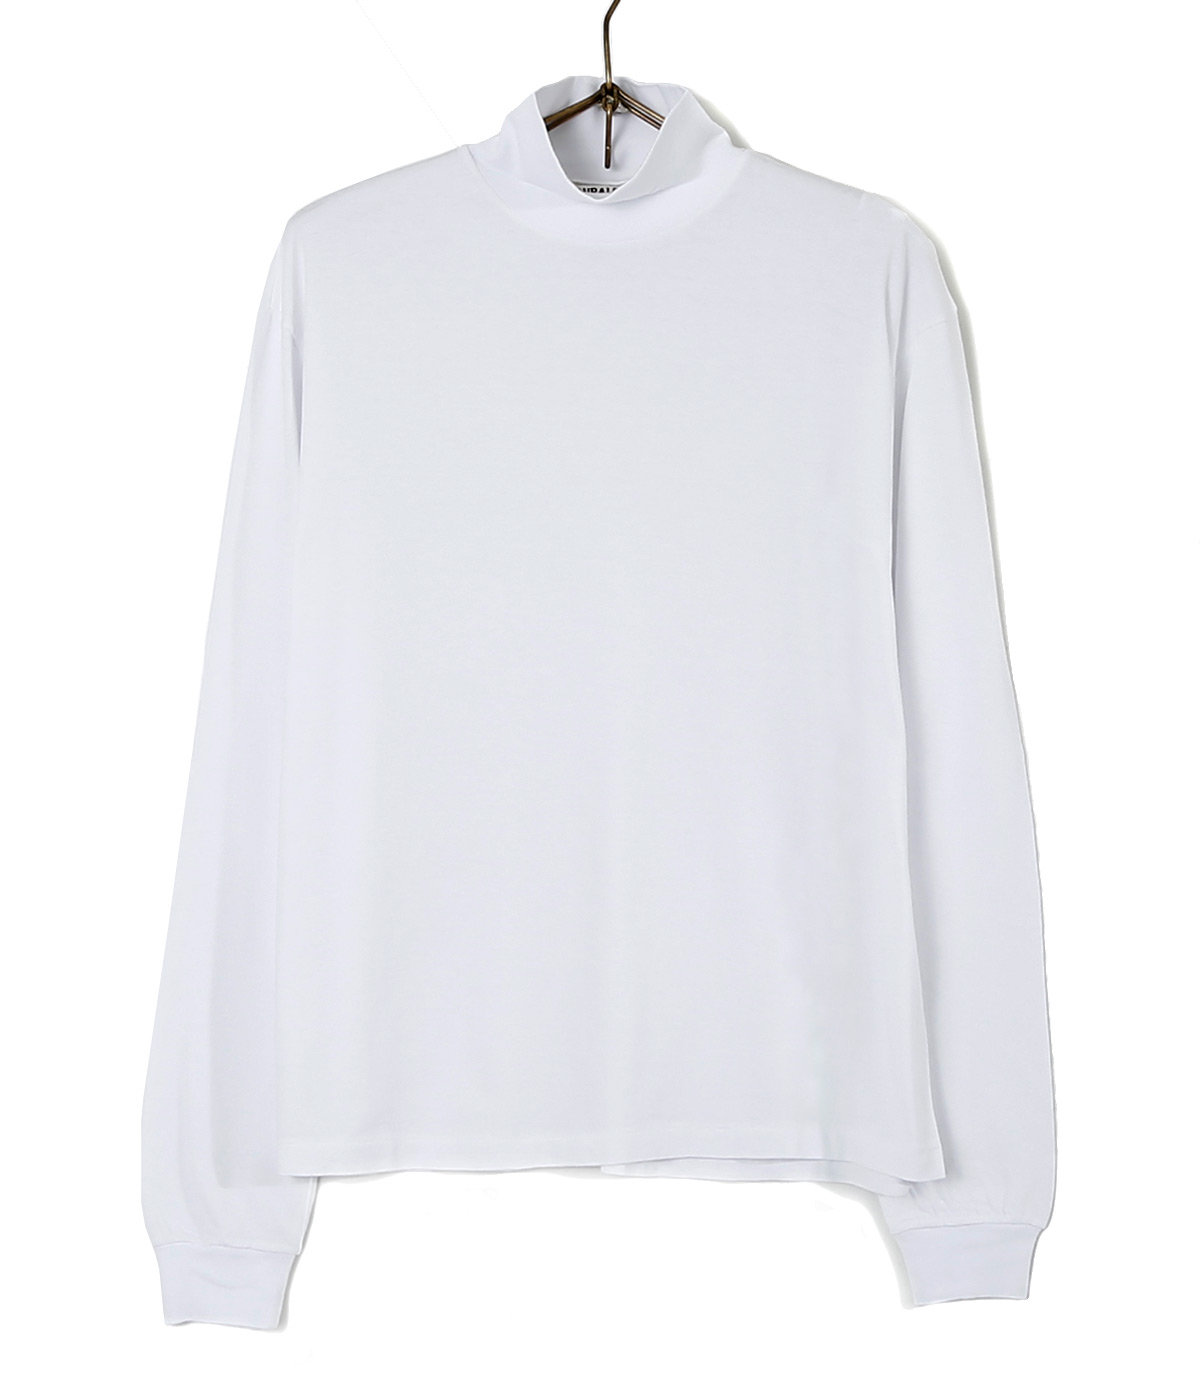 SEAMLESS HI NECK L/S TEE